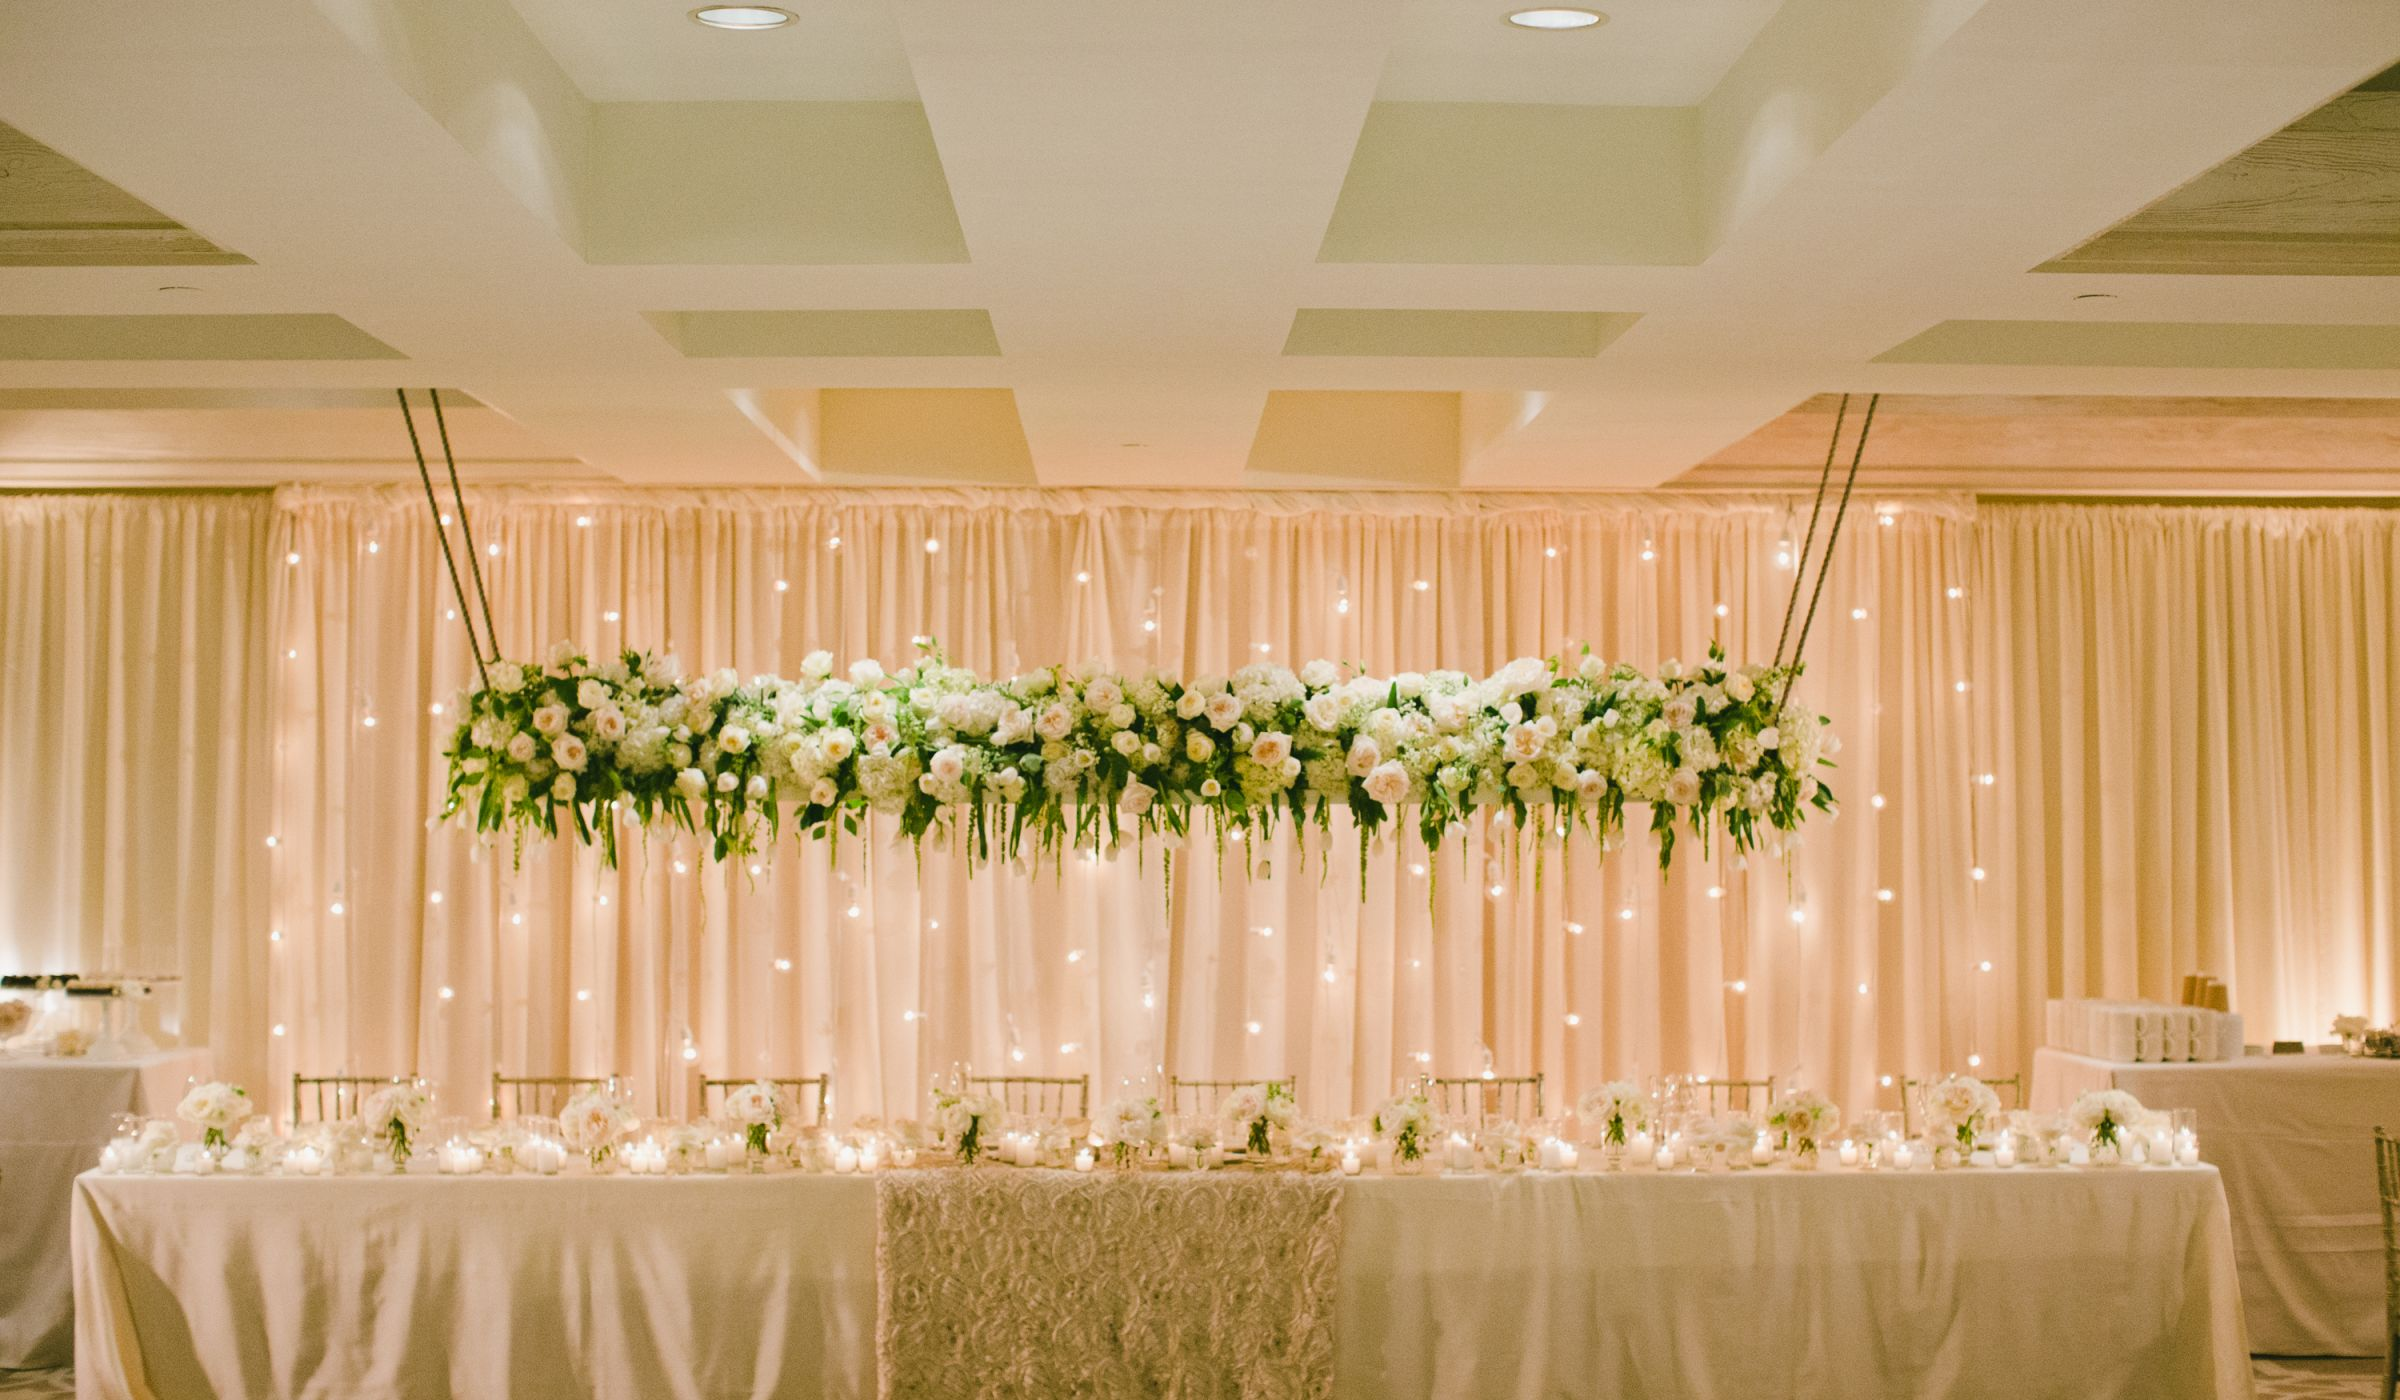 20 hanging centerpieces to spice up your ceiling weddingwire junglespirit